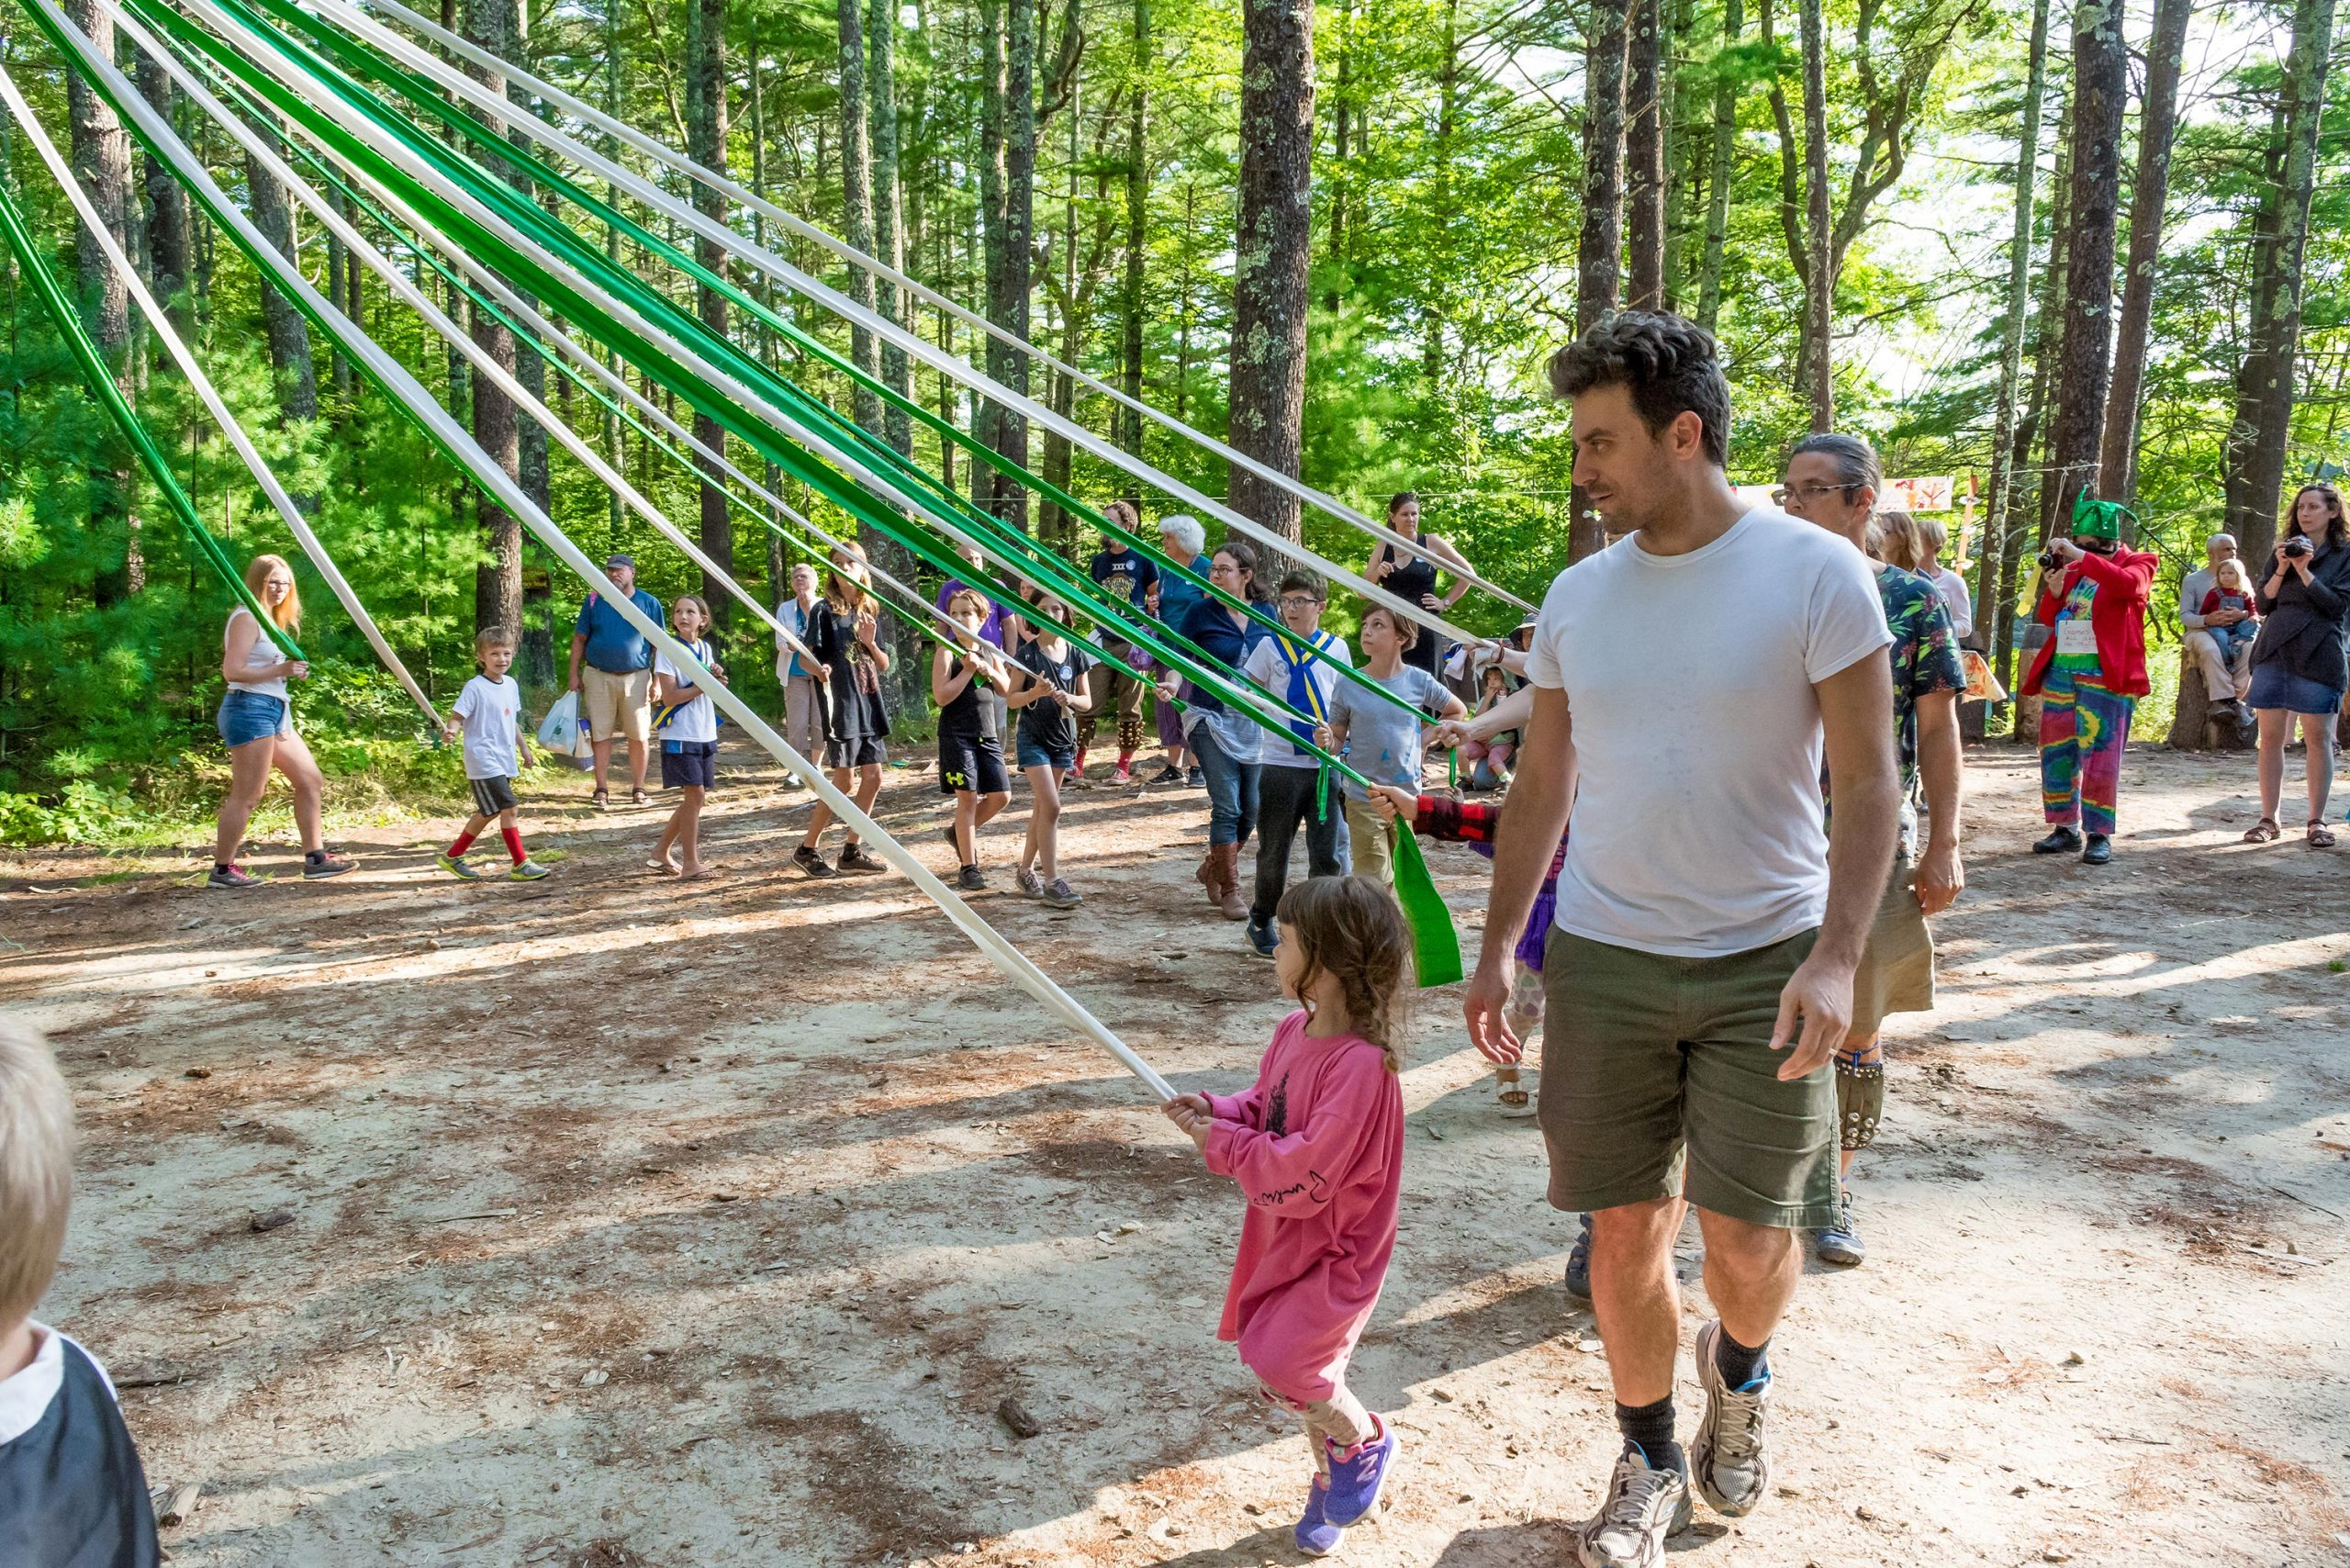 Campers' Week at Pinewoods